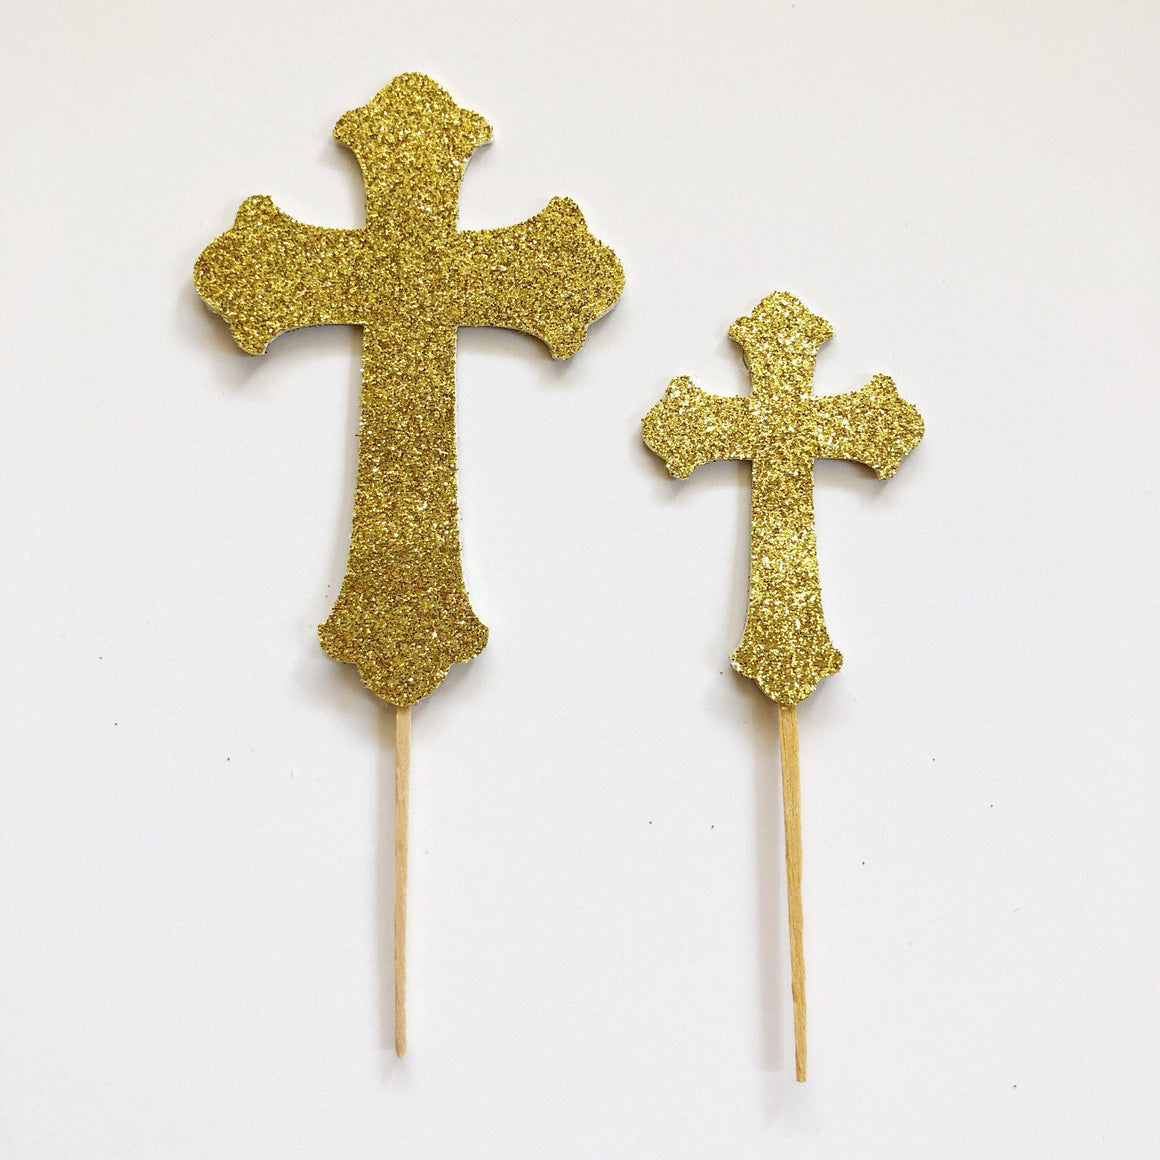 PARTY PICKS - CROSS GLITTER SMALL 2-SIDED